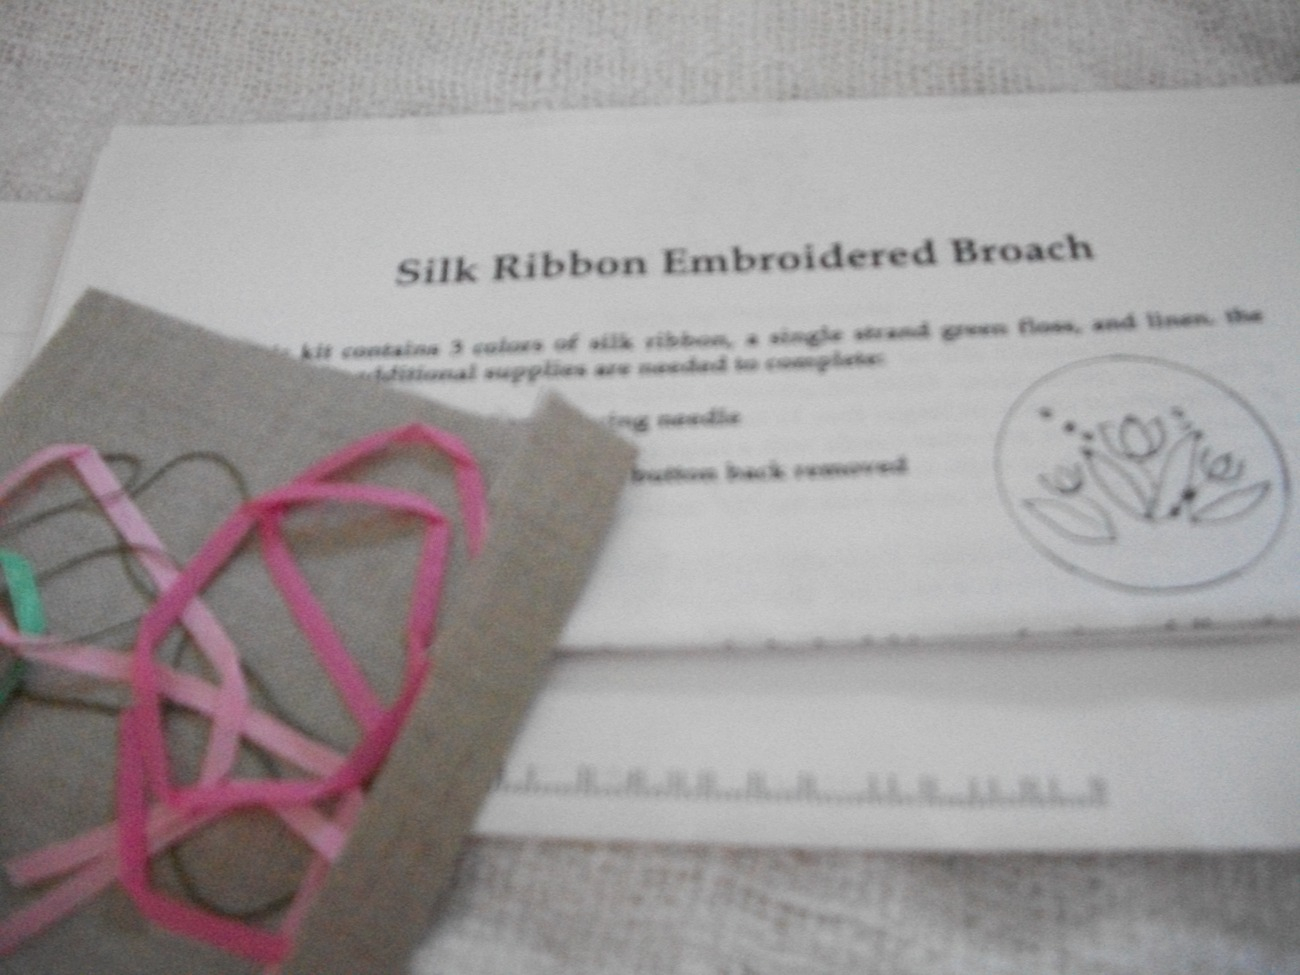 Silk ribbon embroidered broach kit embroidery